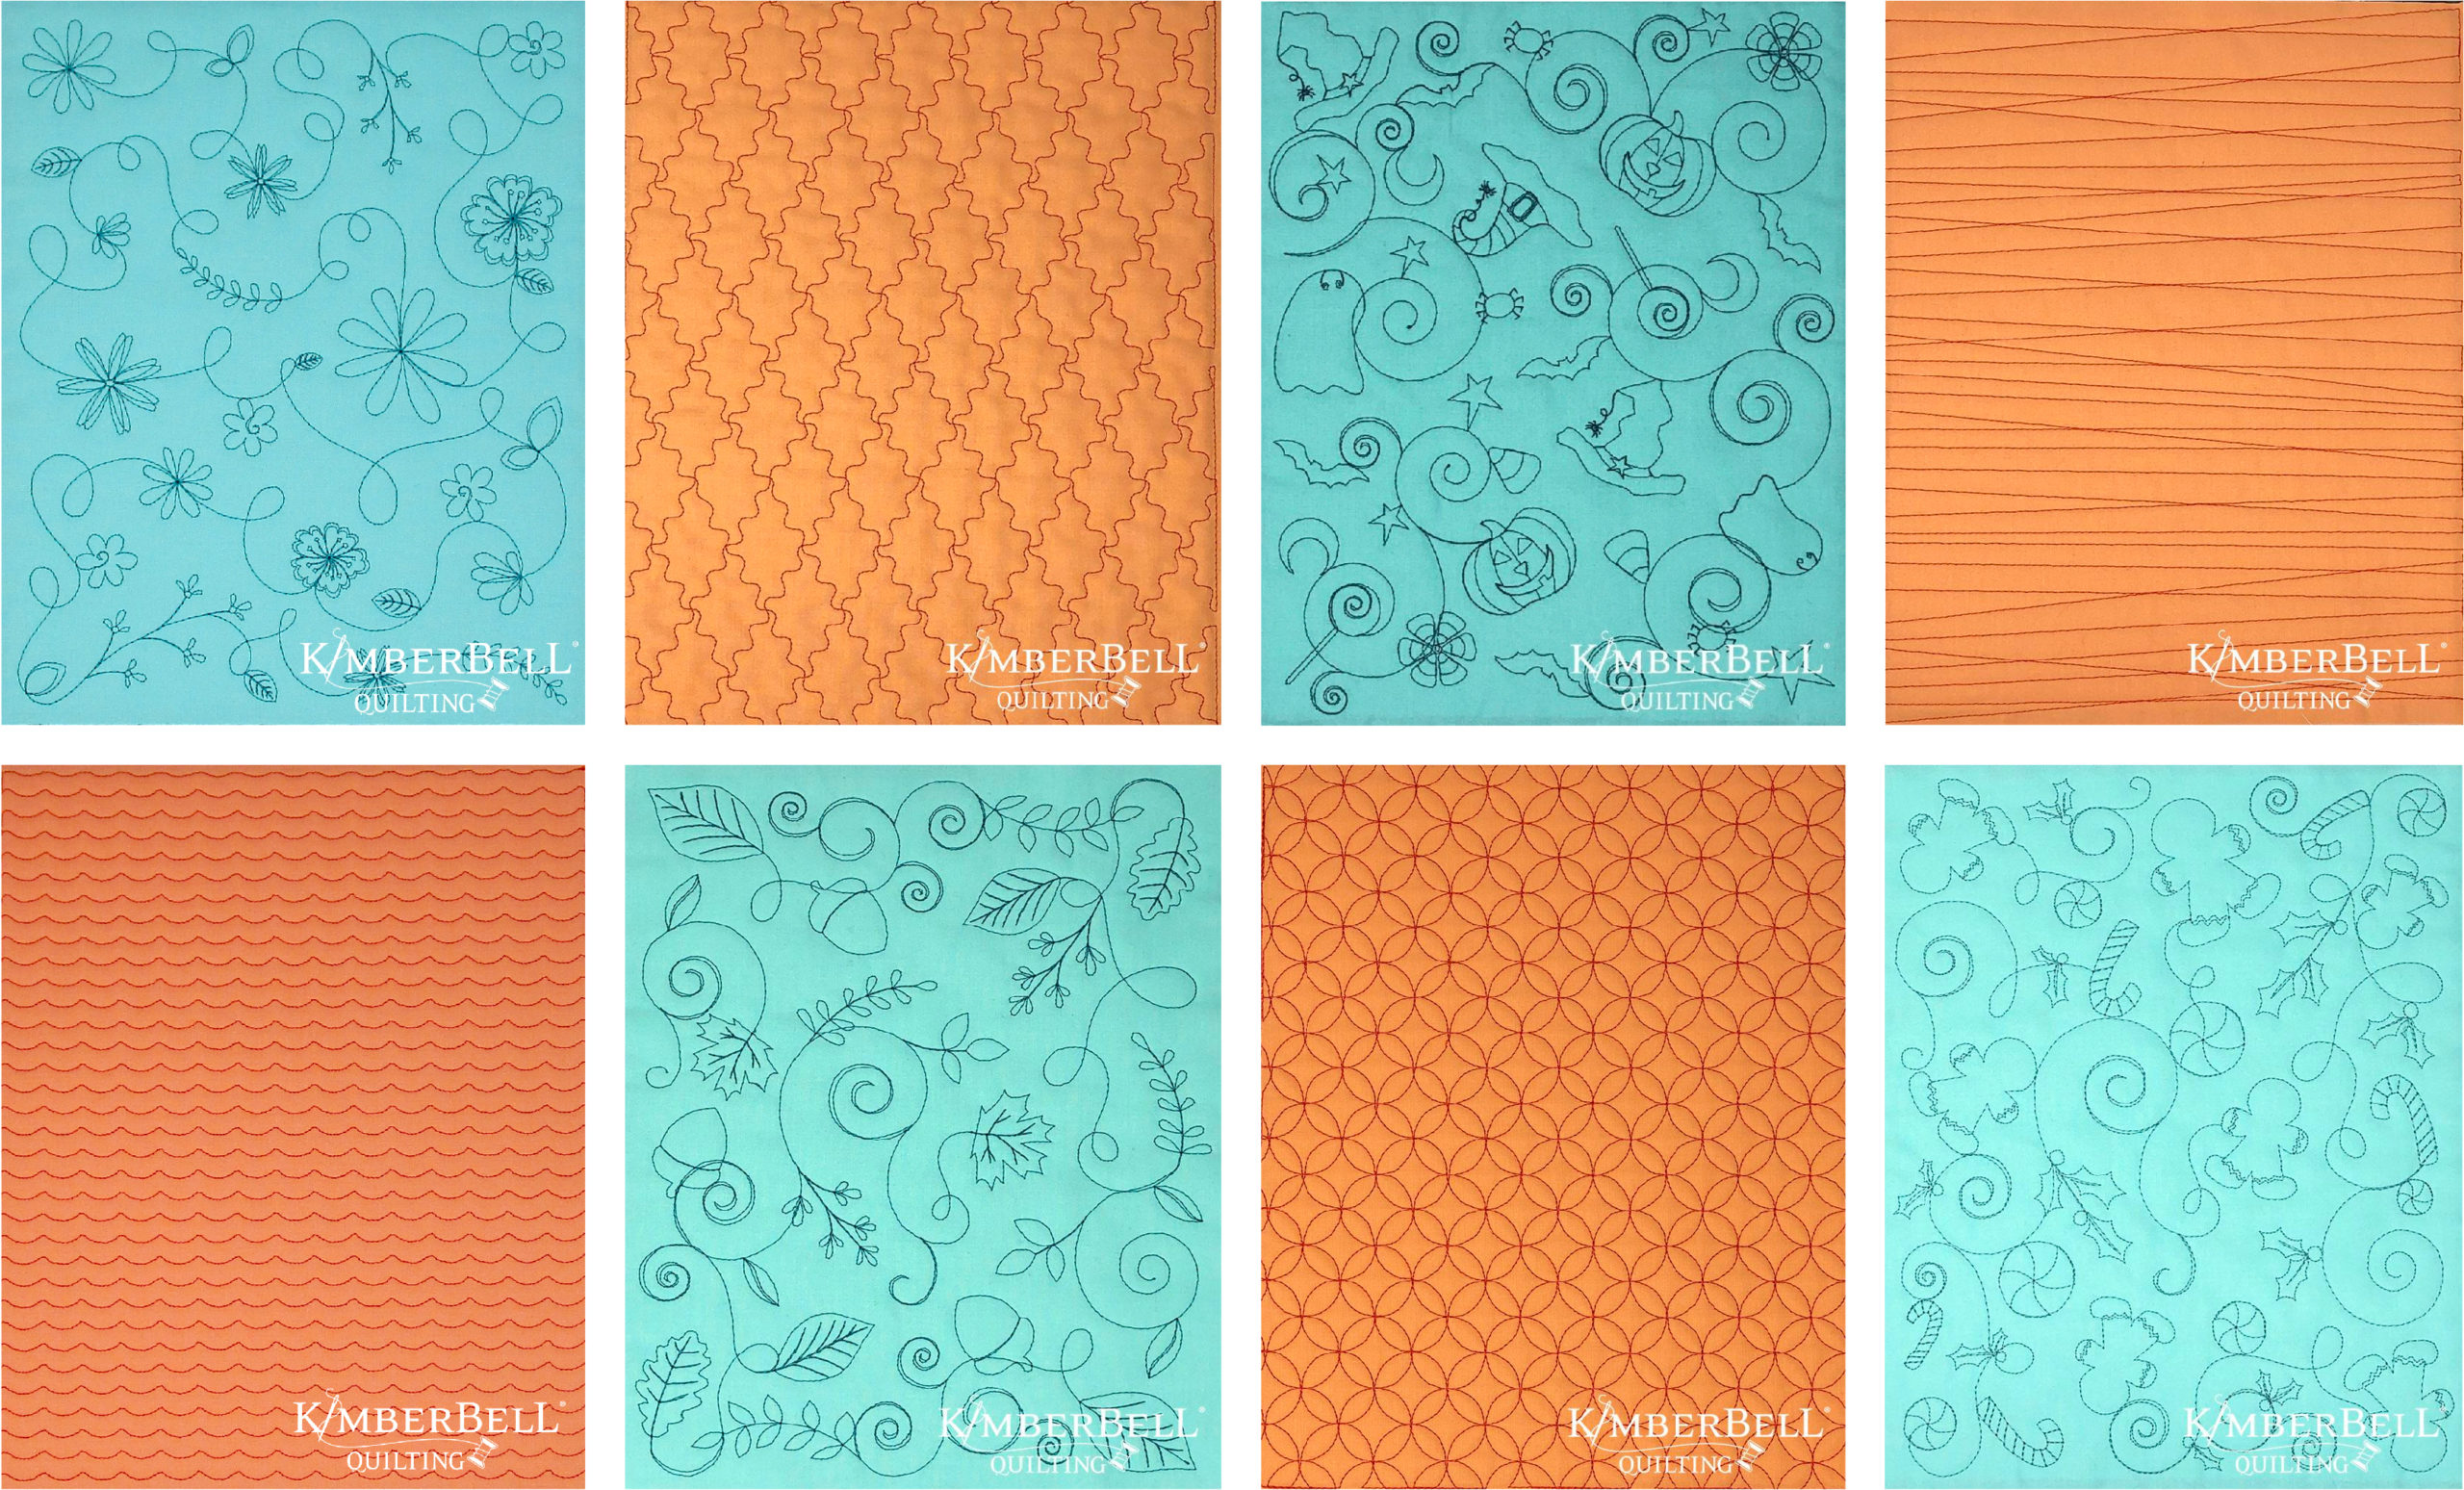 Downloadable designs for machine embroidery and other direct purchases on Kimberbell's website.